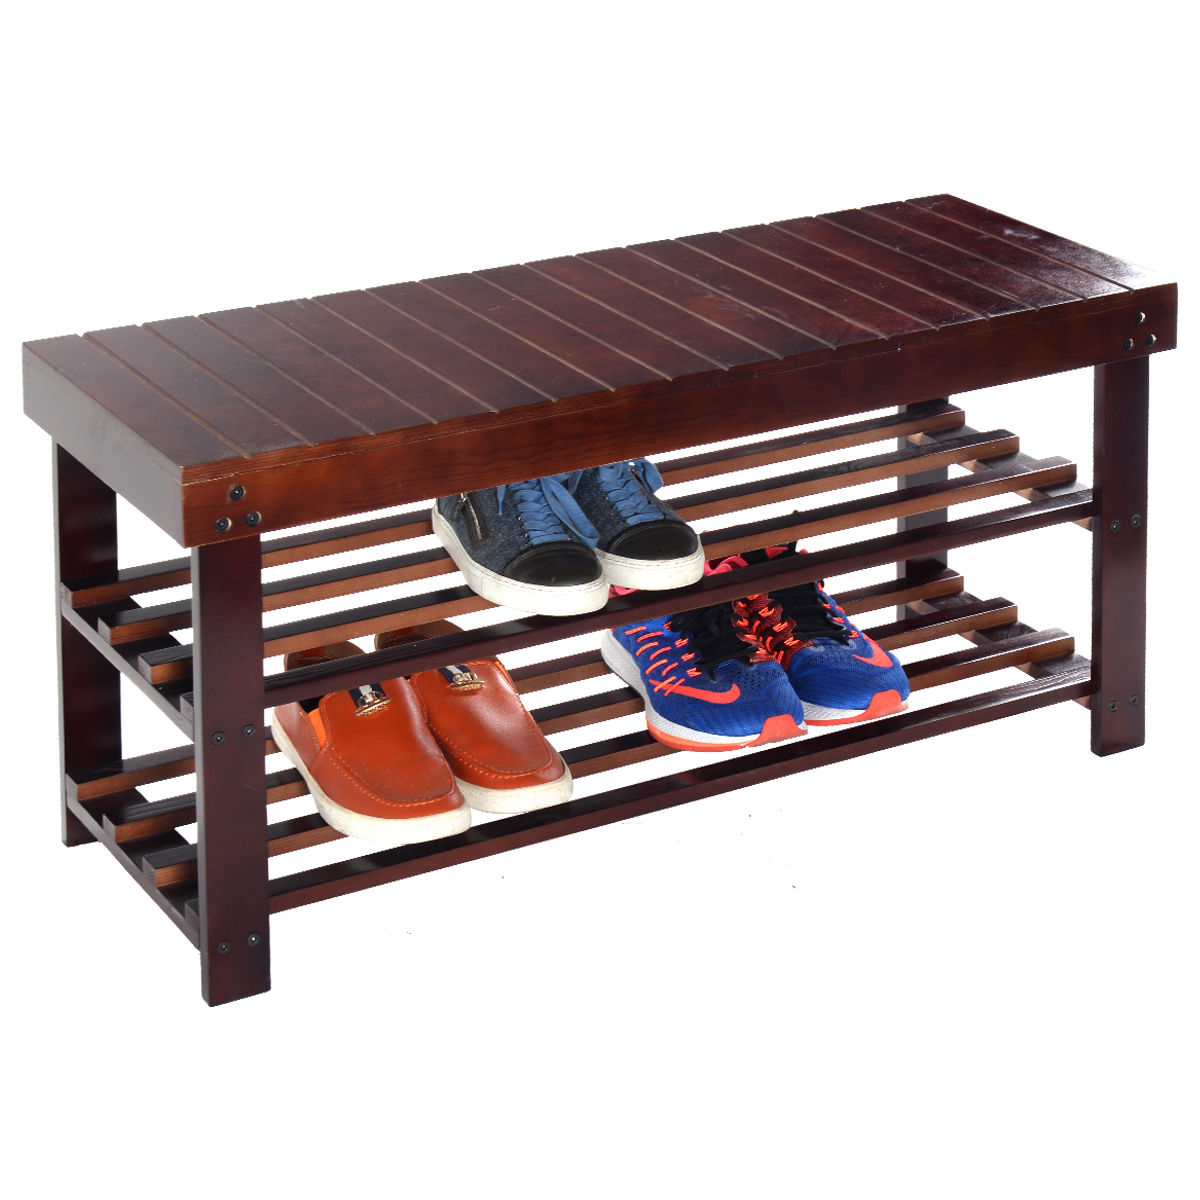 Costway 36'' Solid Wood Shoe Bench Storage Racks Seat Organizer Entryway Hallway Espresso